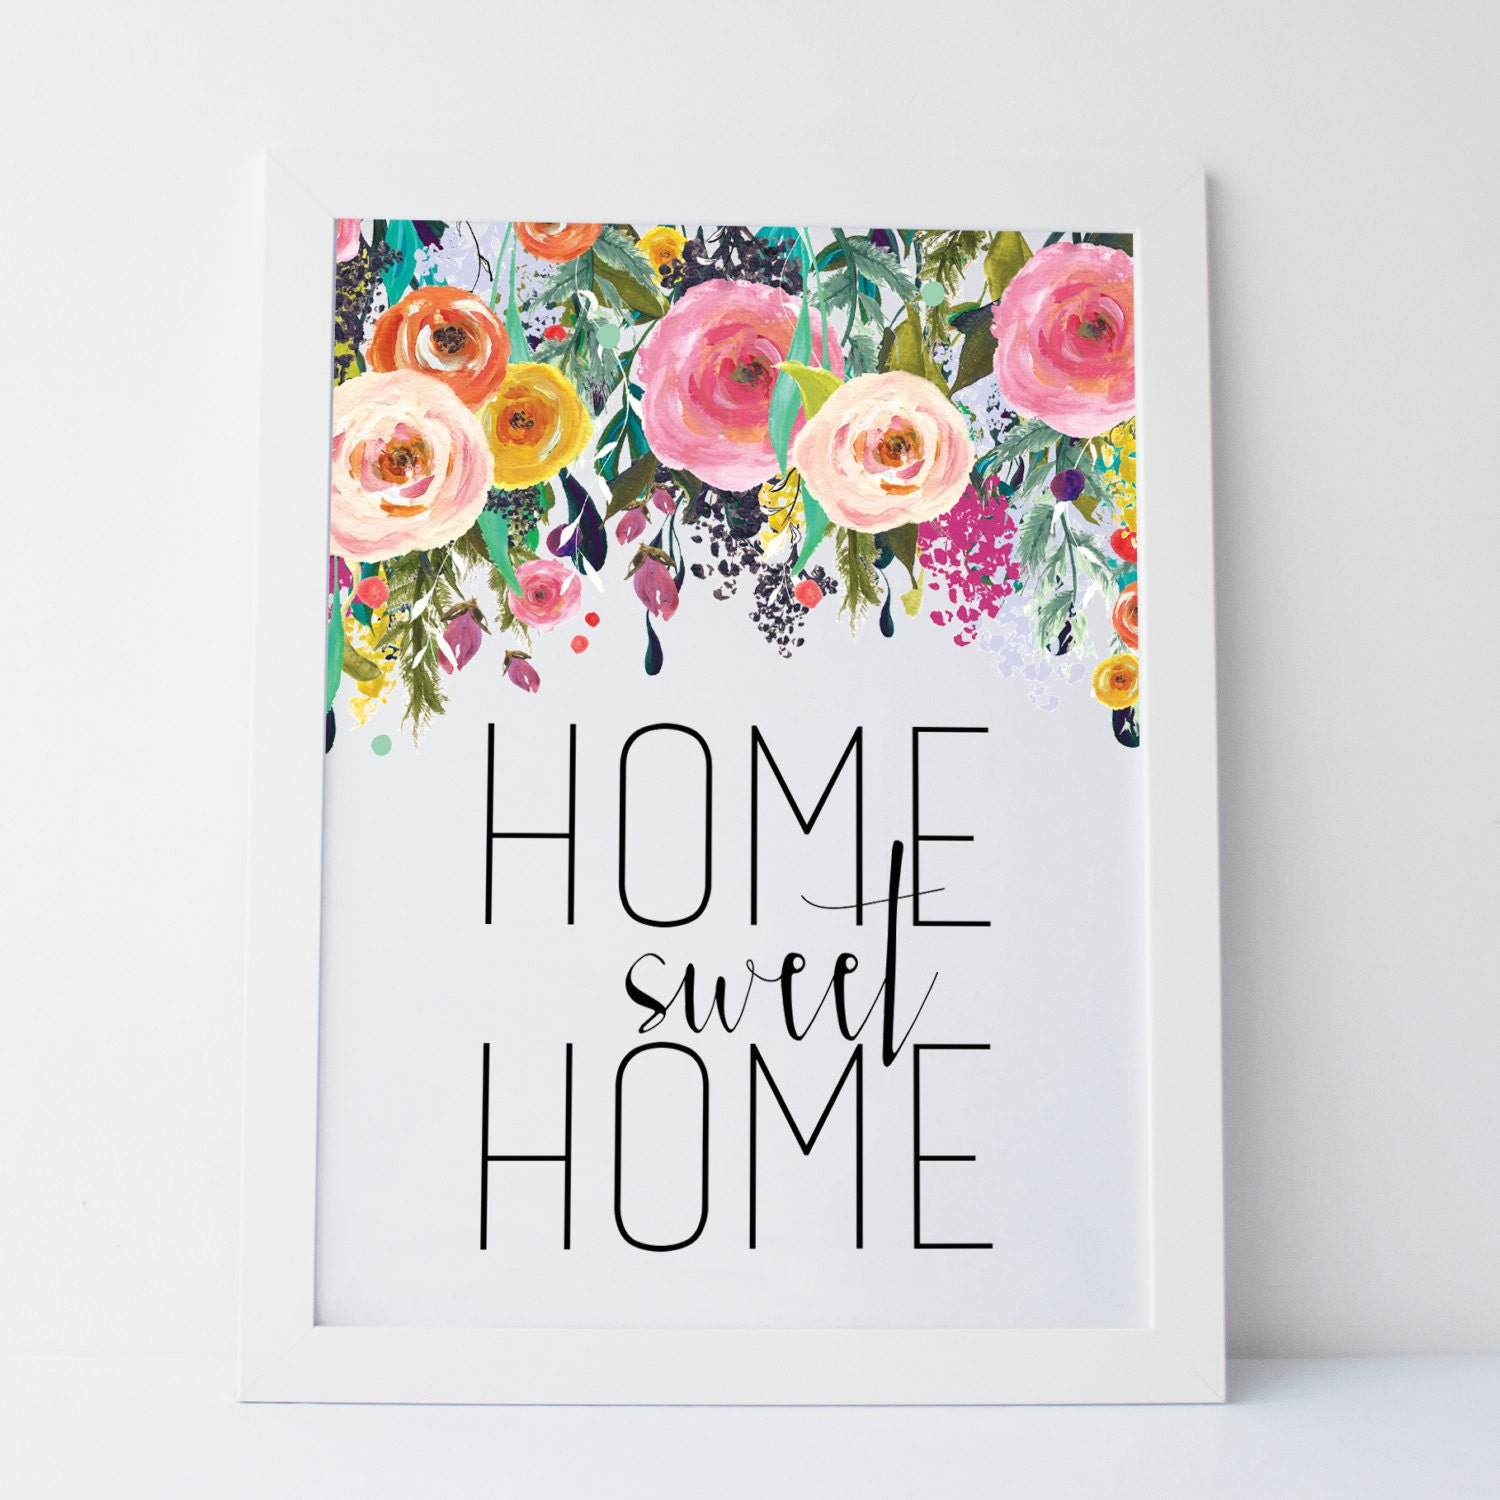 It's just a photo of Refreshing Printable Home Decor